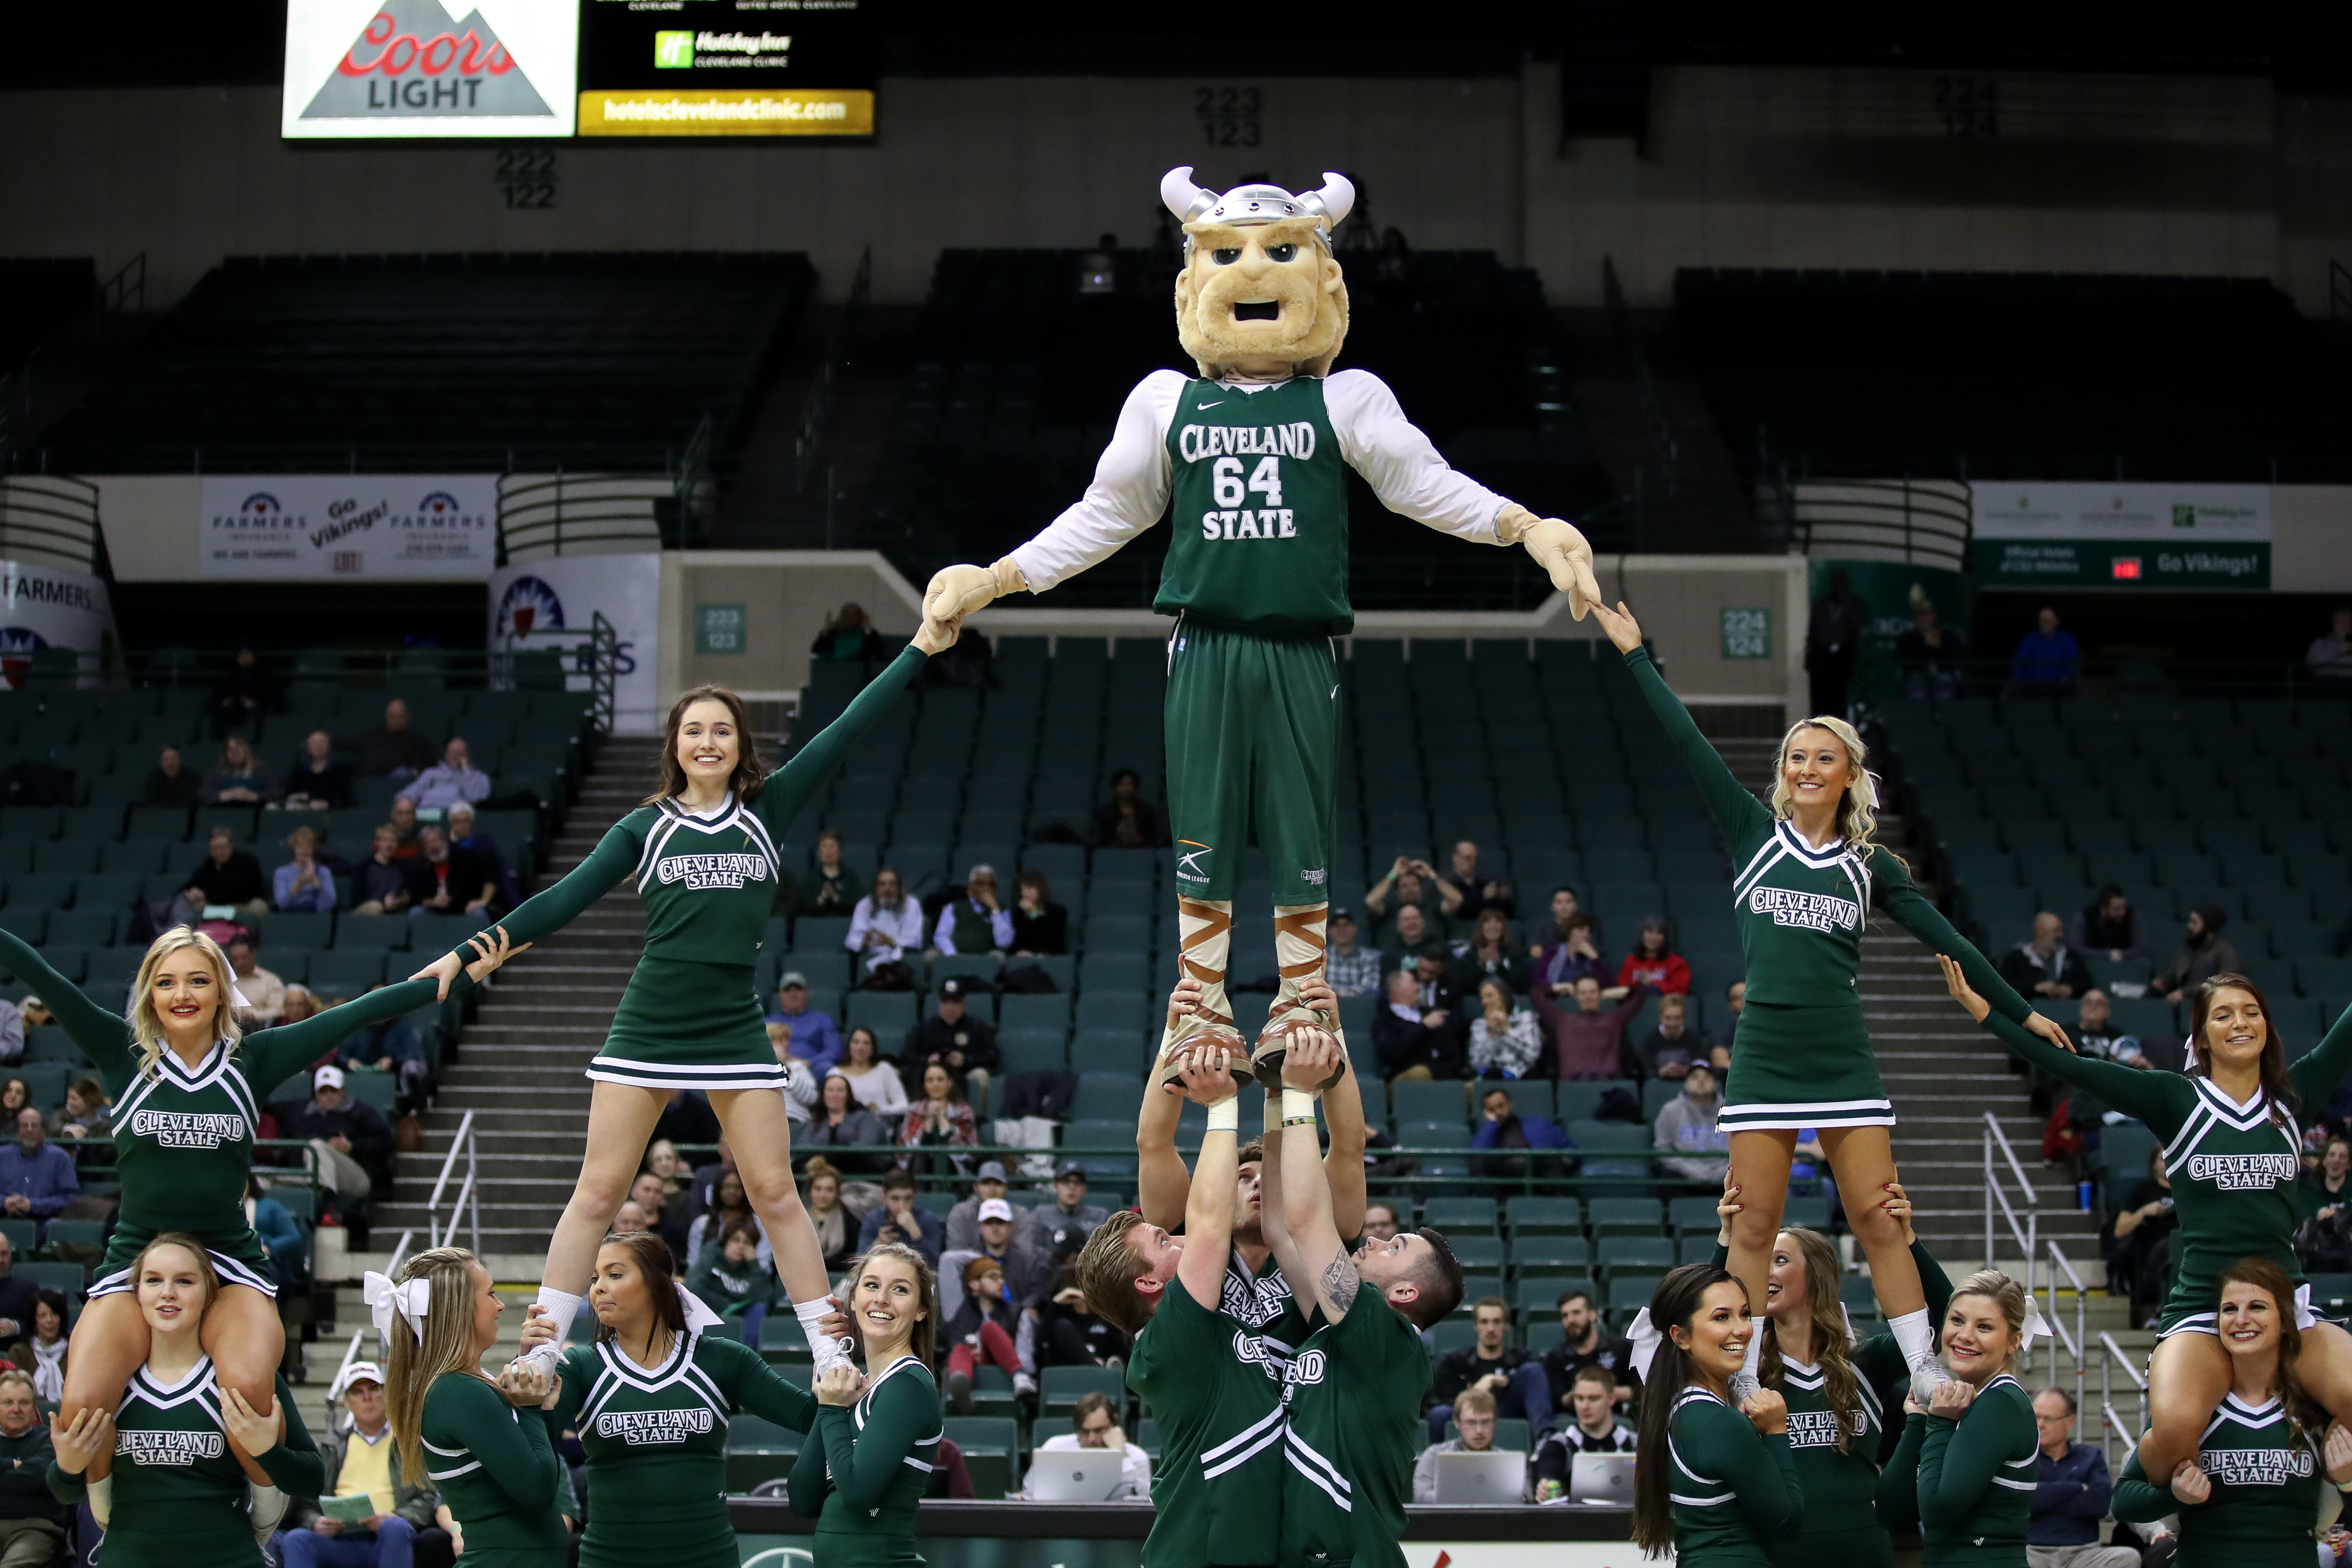 COLLEGE BASKETBALL: FEB 01 Wright State at Cleveland State